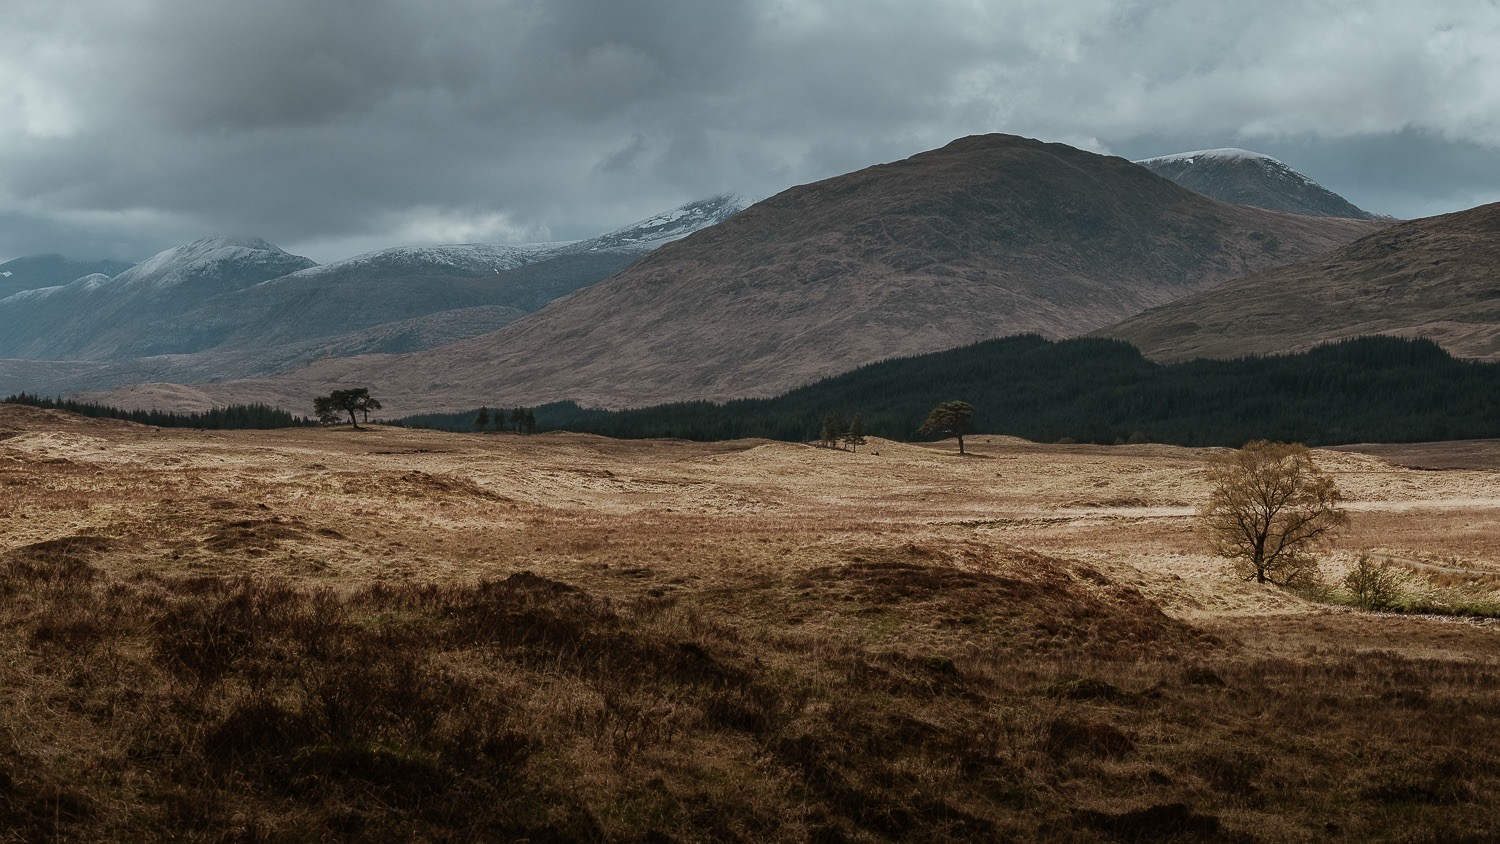 0008-scotland-tamron-le monde de la photo-paysage-20190507165826-compress.jpg